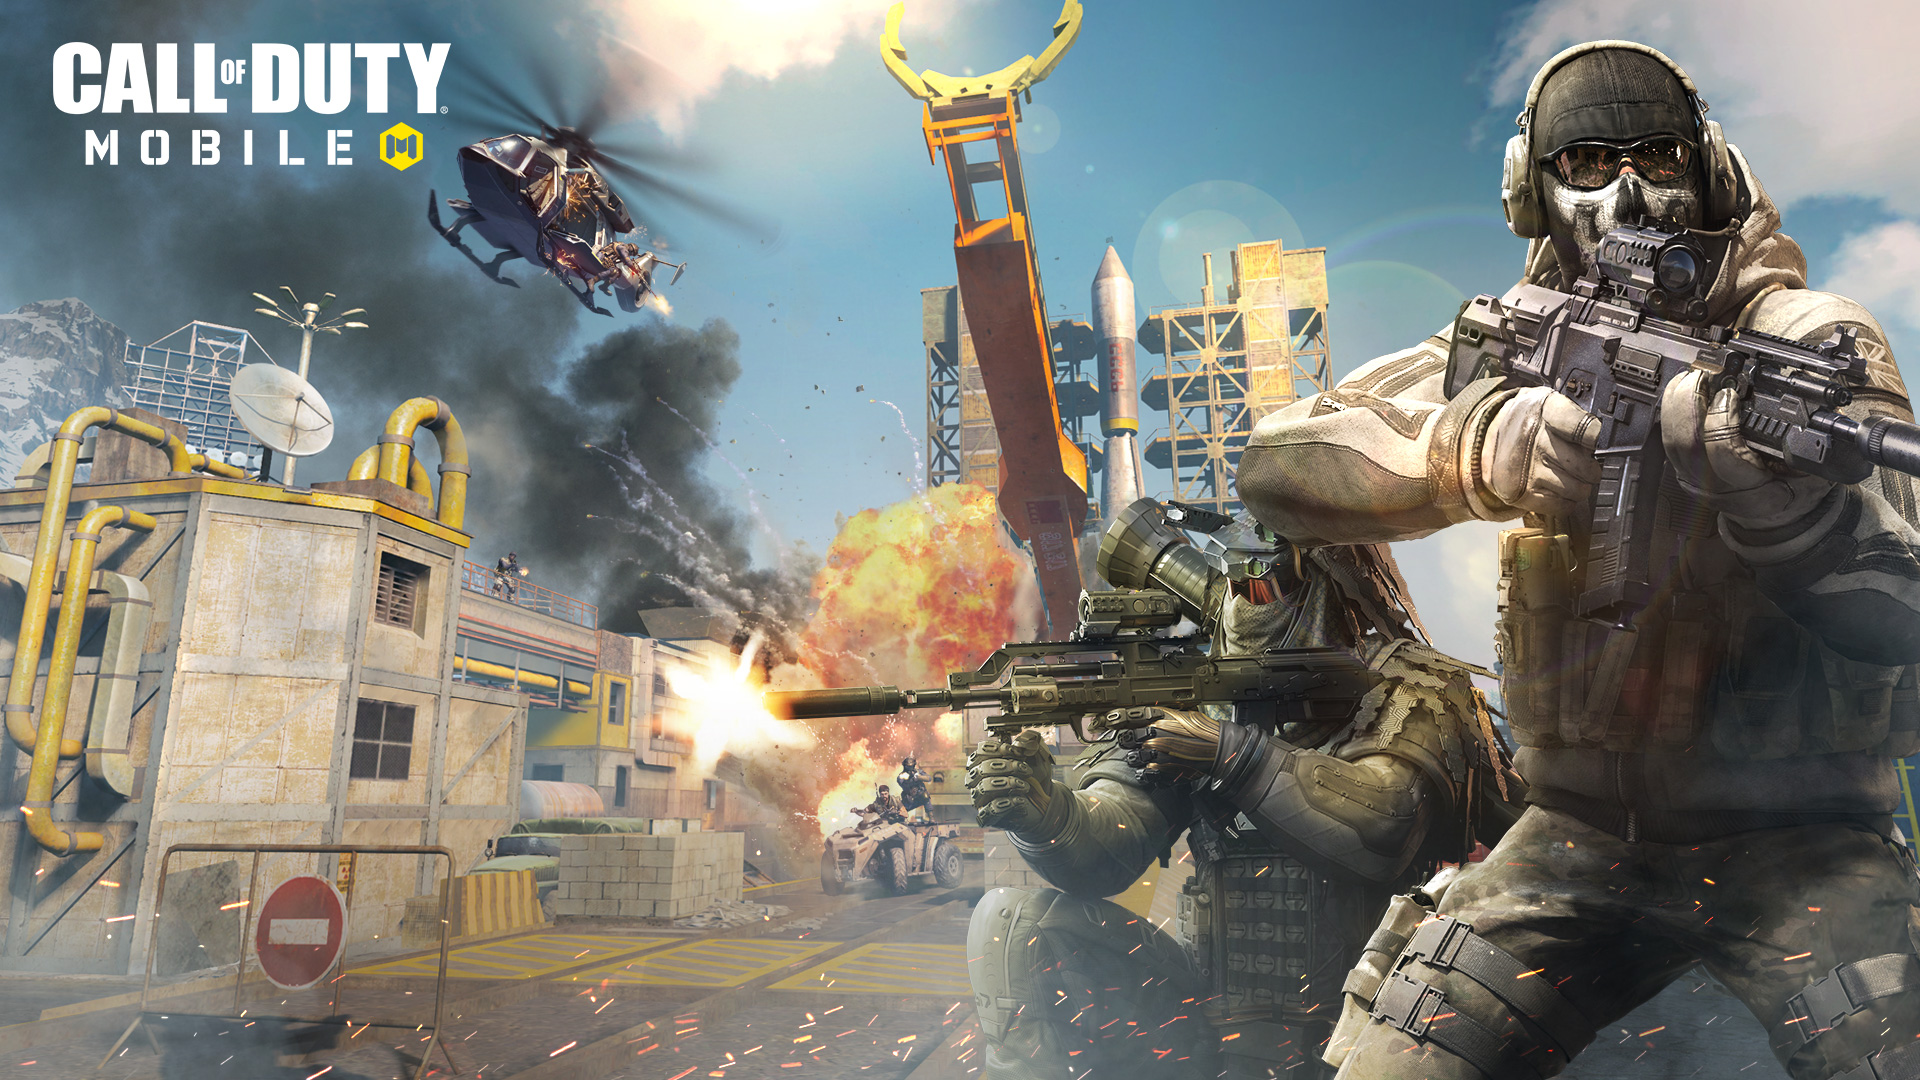 Call of Duty Mobile: Release Date Officially Announced